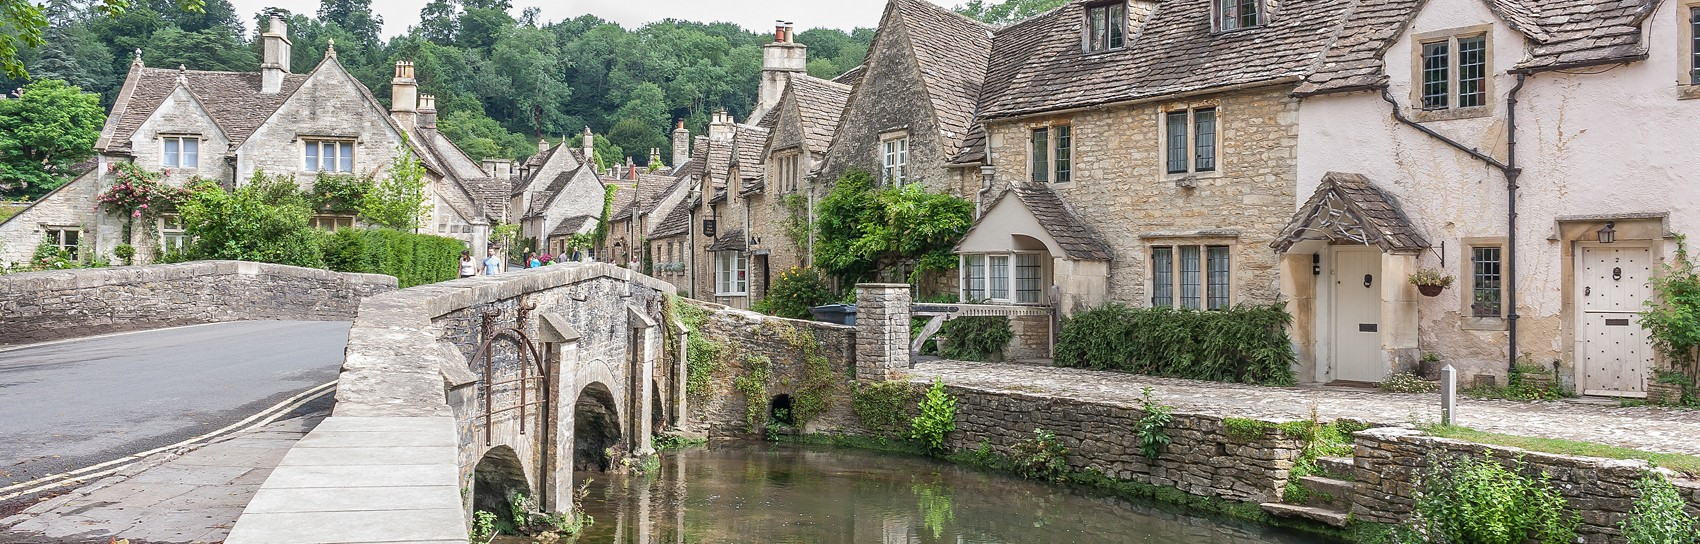 Castle Combe in The Cotswolds. Photograph by GRAHAM CUSTANCE